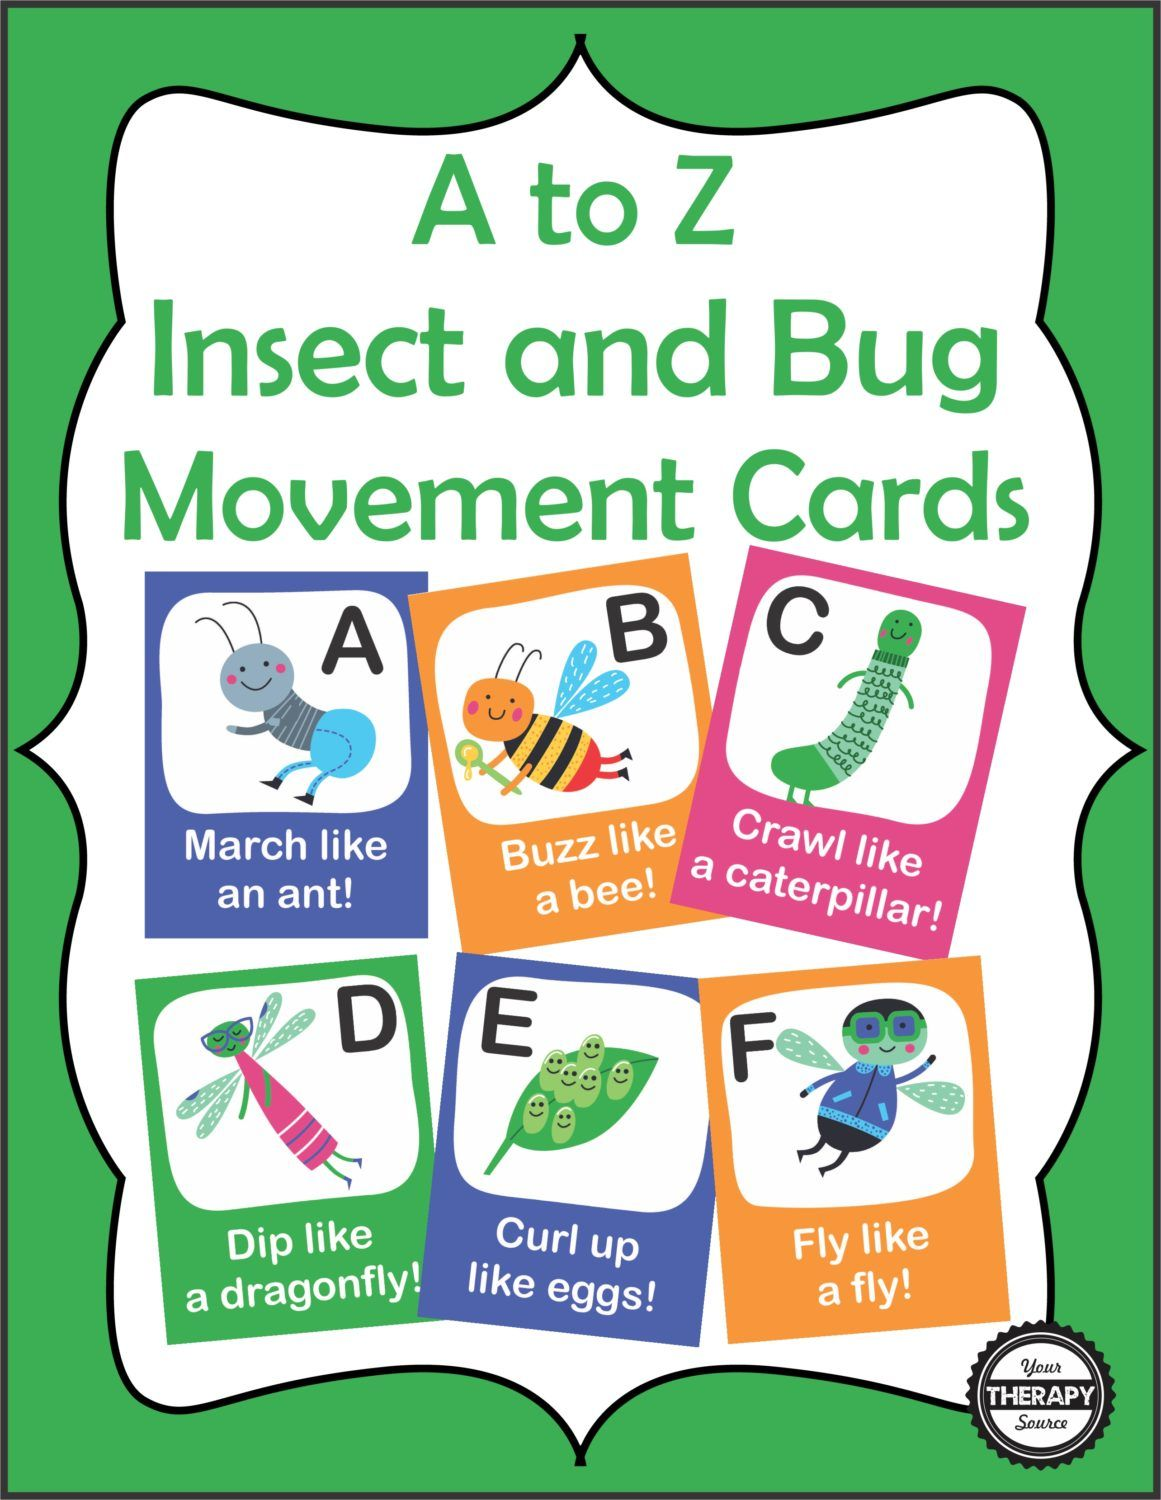 A to Z Insect and Bug Movement Cards Cover   Active play   Pinterest ...